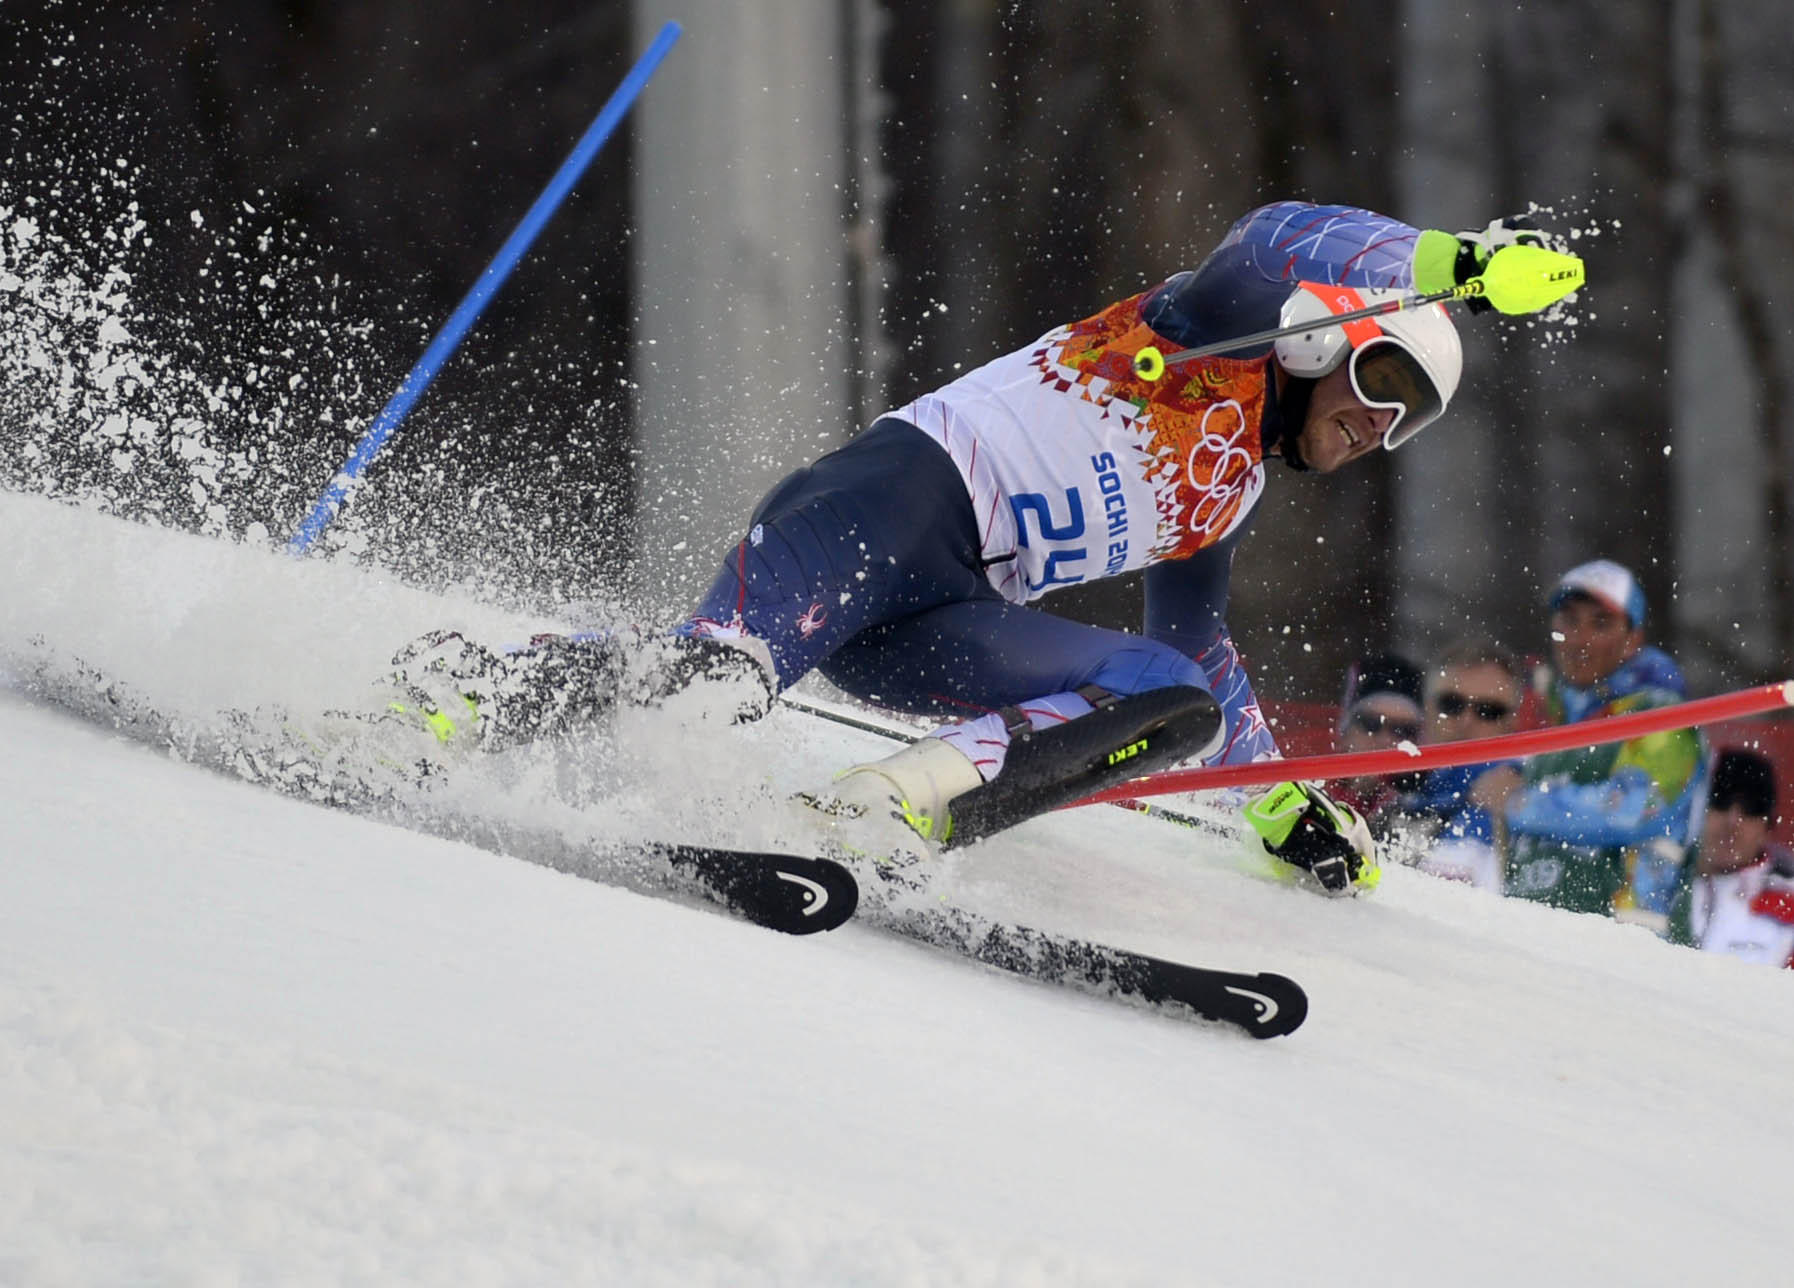 Bode Miller (USA) competes in the men's super combined slalom during the Sochi 2014 Olympic Winter Games at Rosa Khutor Alpine Center.